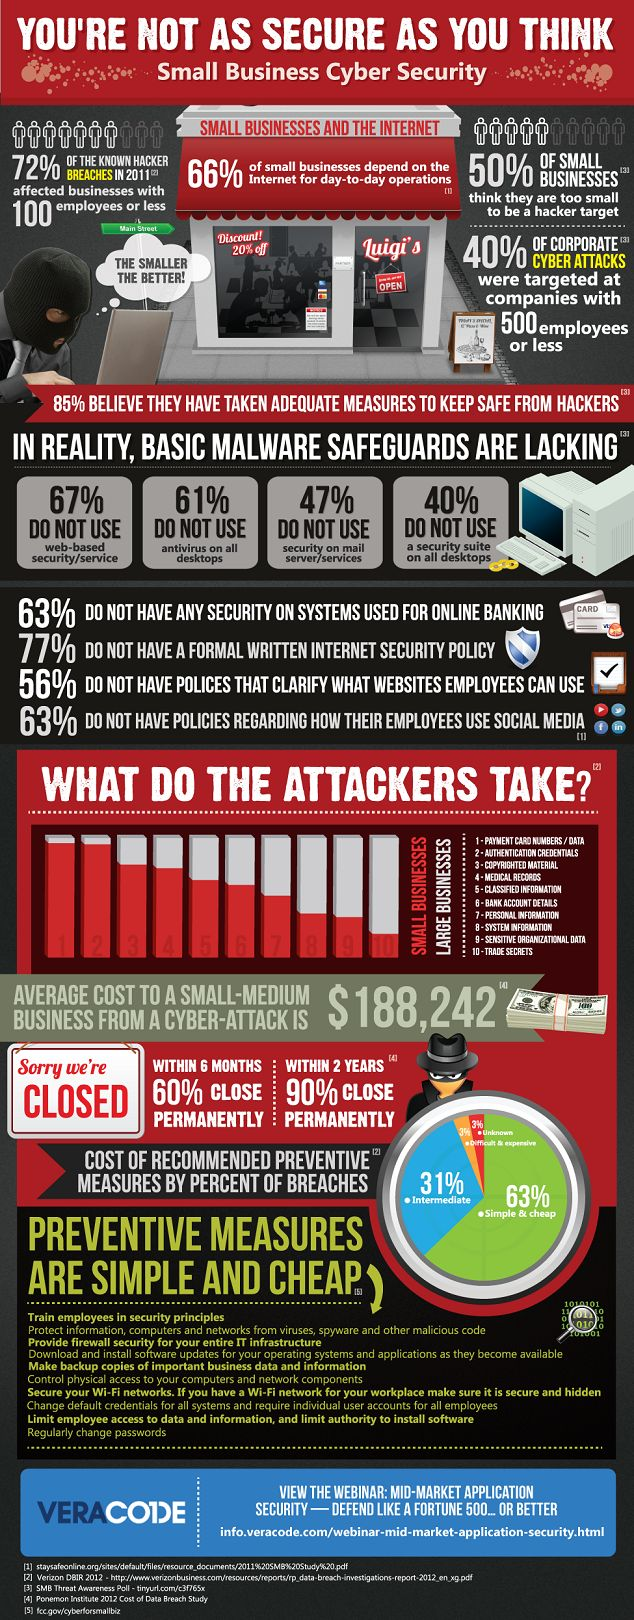 http://www.veracode.com/blog/wp-content/uploads/2012/06/small-business-cyber-security.png via veracode.com